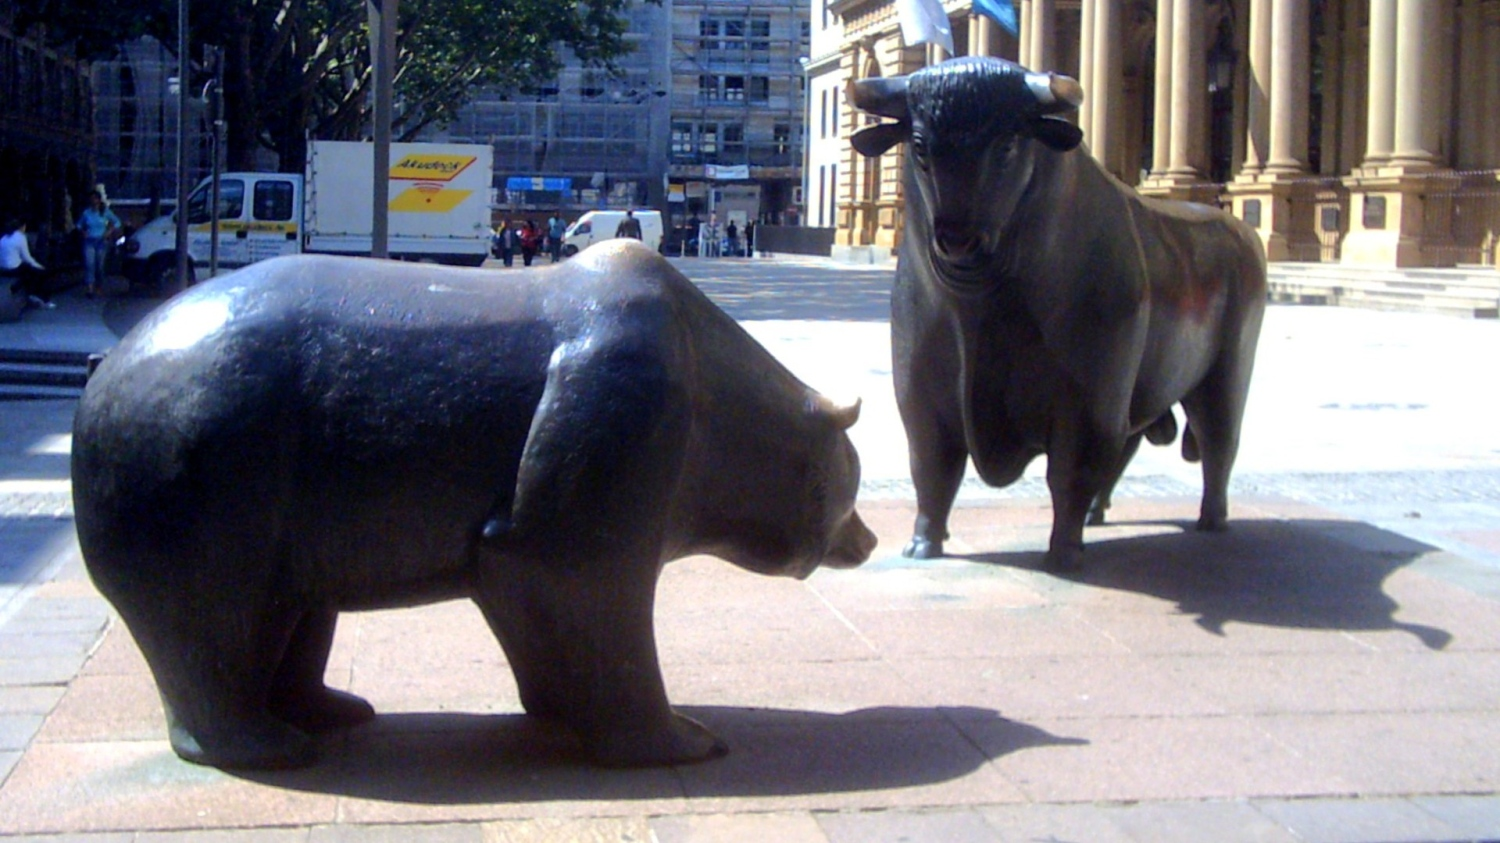 http://upload.wikimedia.org/wikipedia/commons/f/fc/Bull_and_bear.jpg